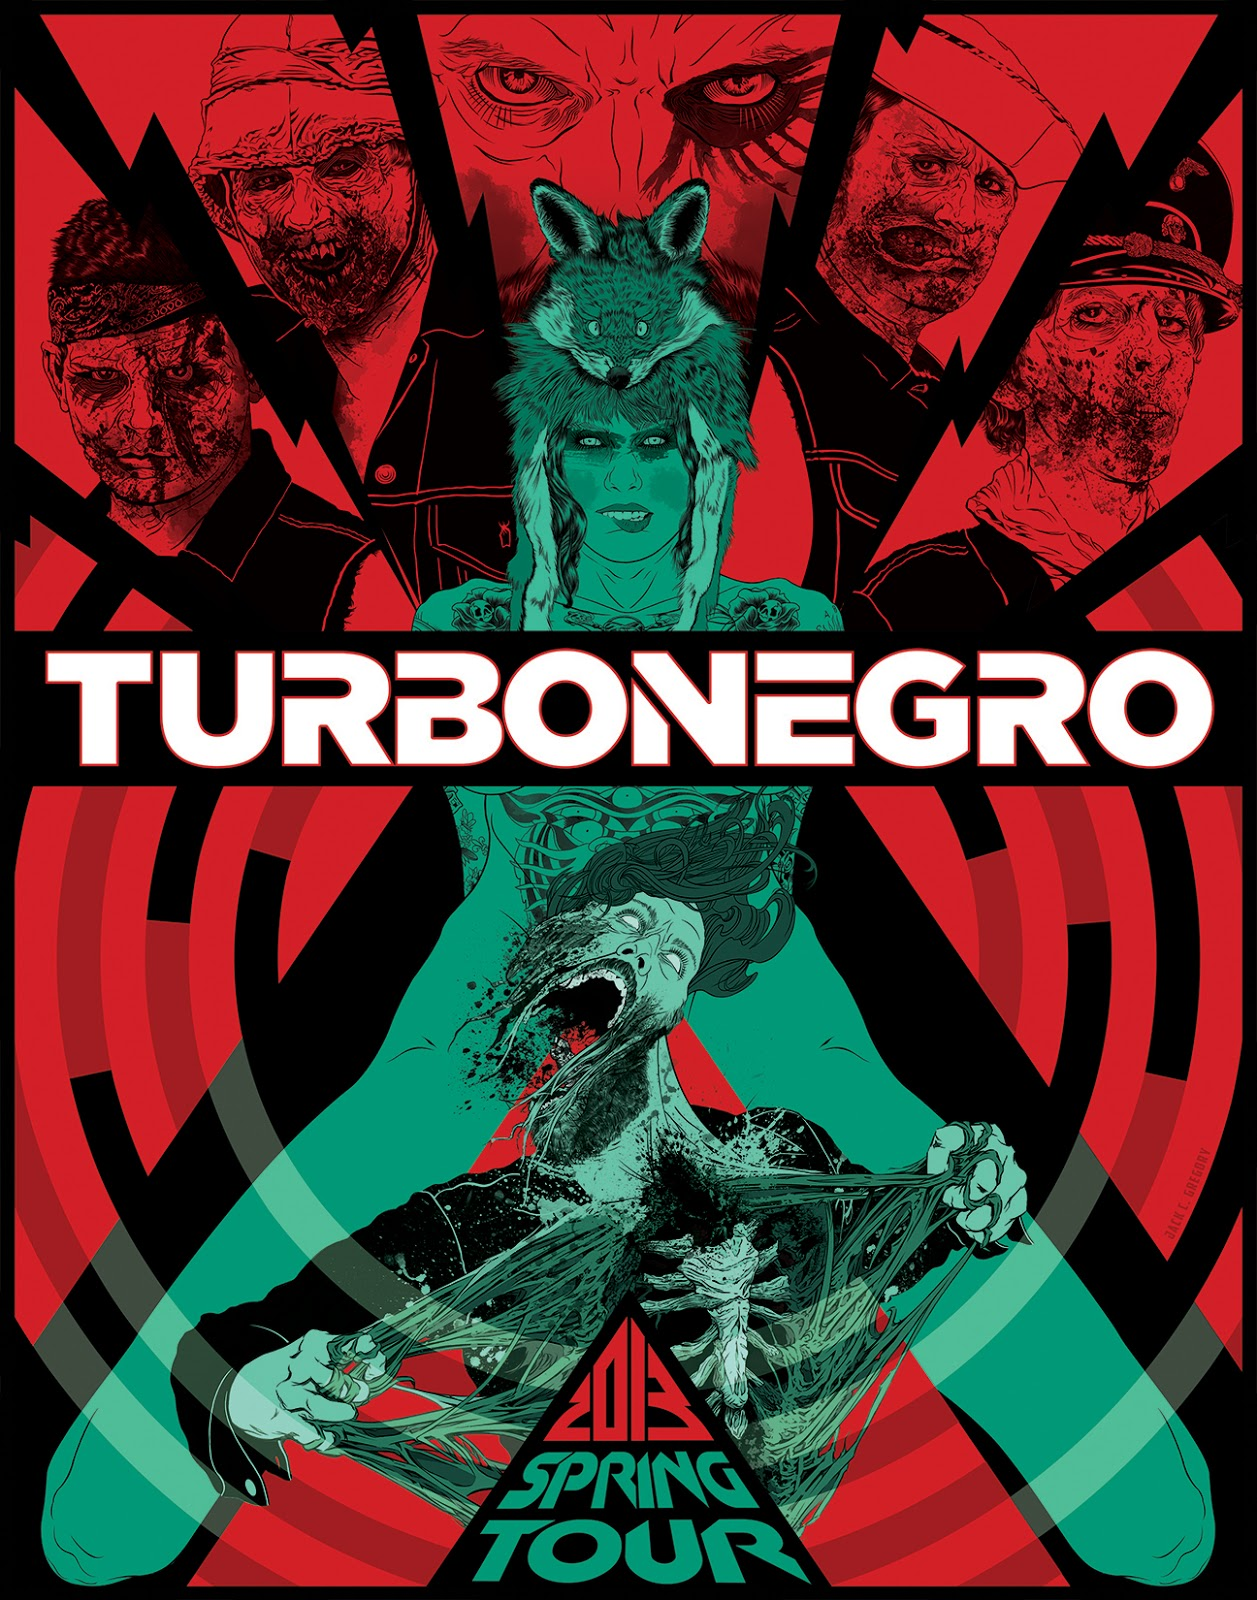 b41c1af1b4 The Agony and the Ecstasy  Turbonegro 2013 Tour Poster + 7